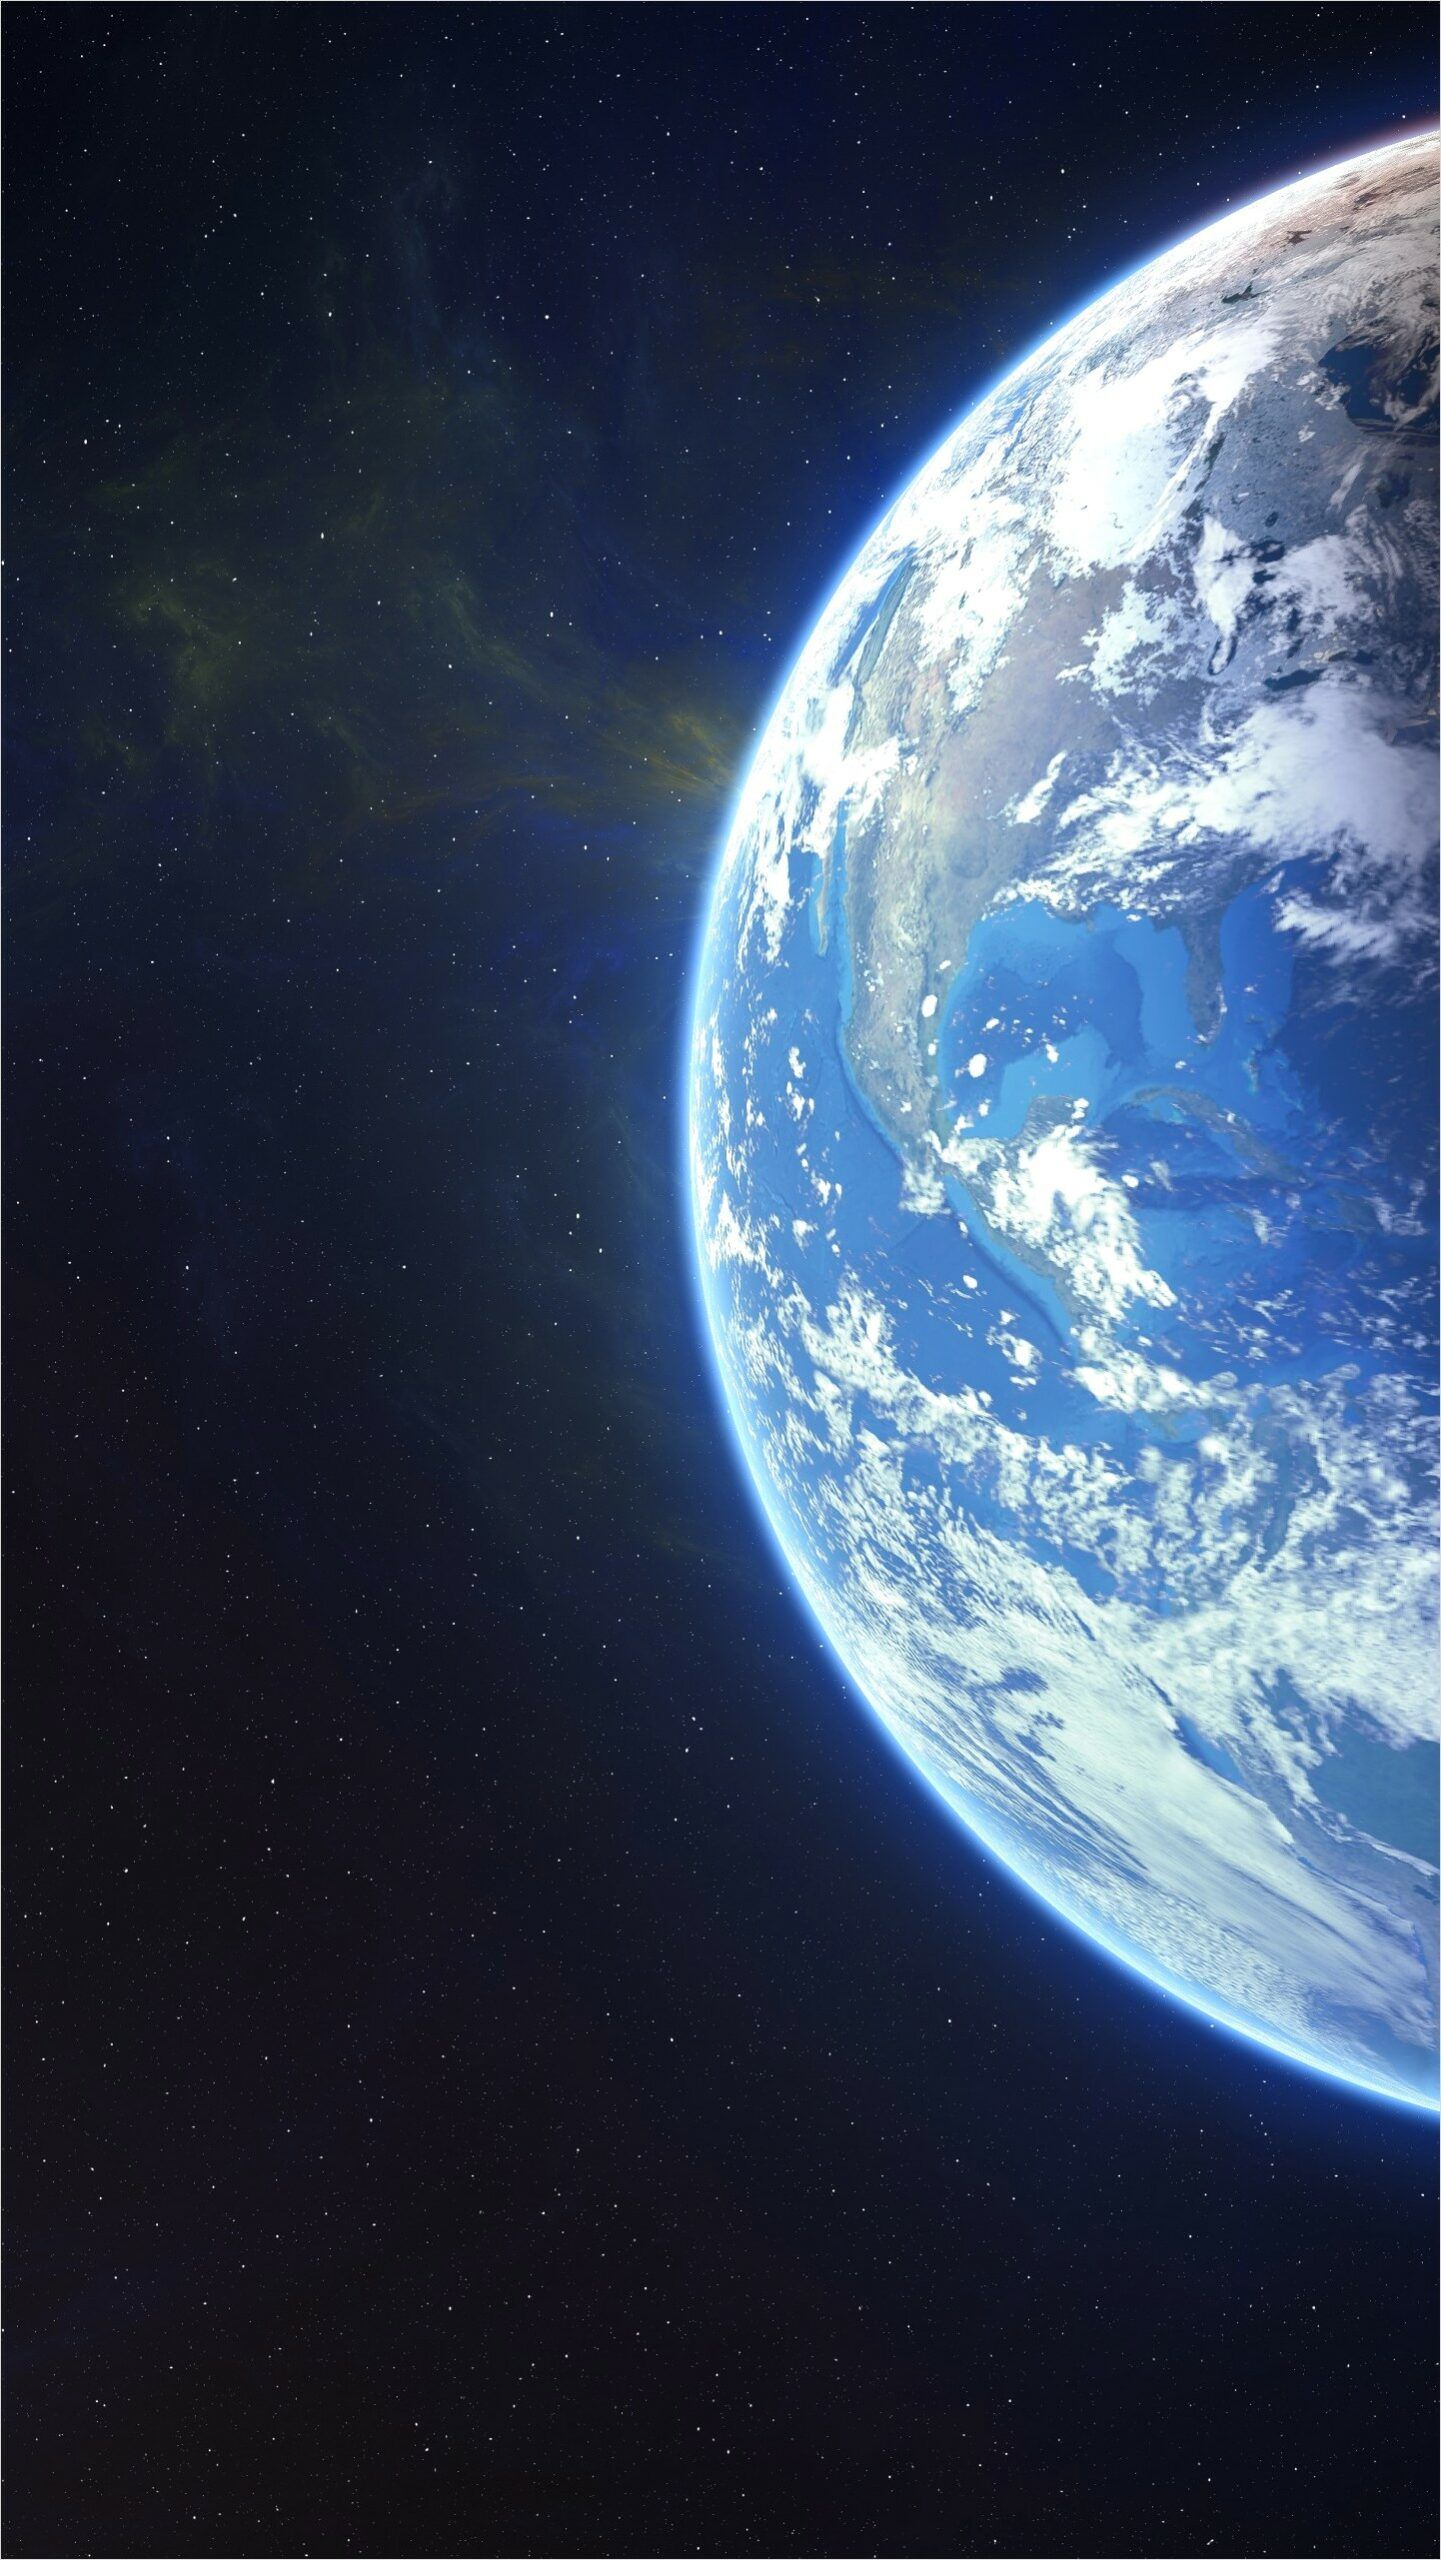 4k Deskop Wallpaper Loop Reddit In 2020 Wallpaper Space Wallpaper Earth Space Art